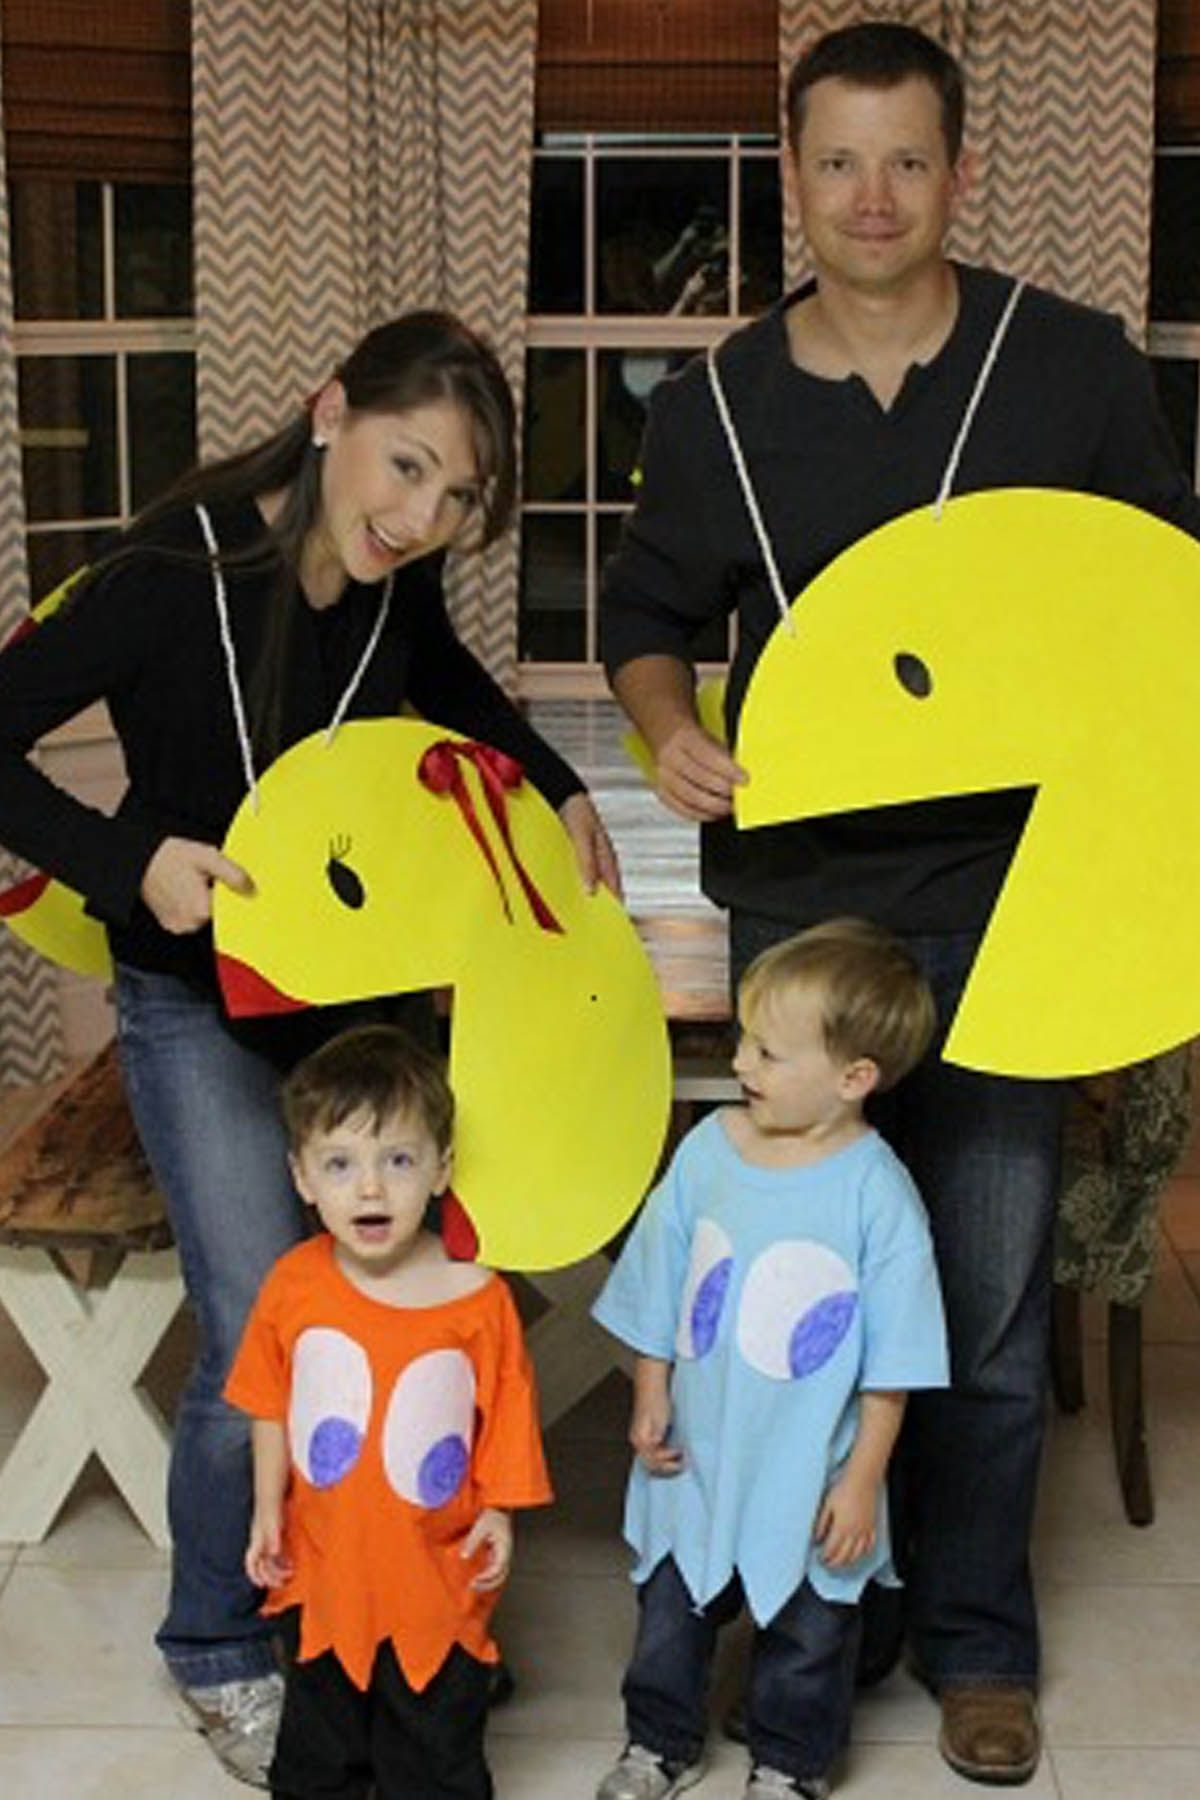 30 Best Family Halloween Costumes 2018 - Cute Ideas for Themed Costumes for Families  sc 1 st  Womanu0027s Day & 30 Best Family Halloween Costumes 2018 - Cute Ideas for Themed ...